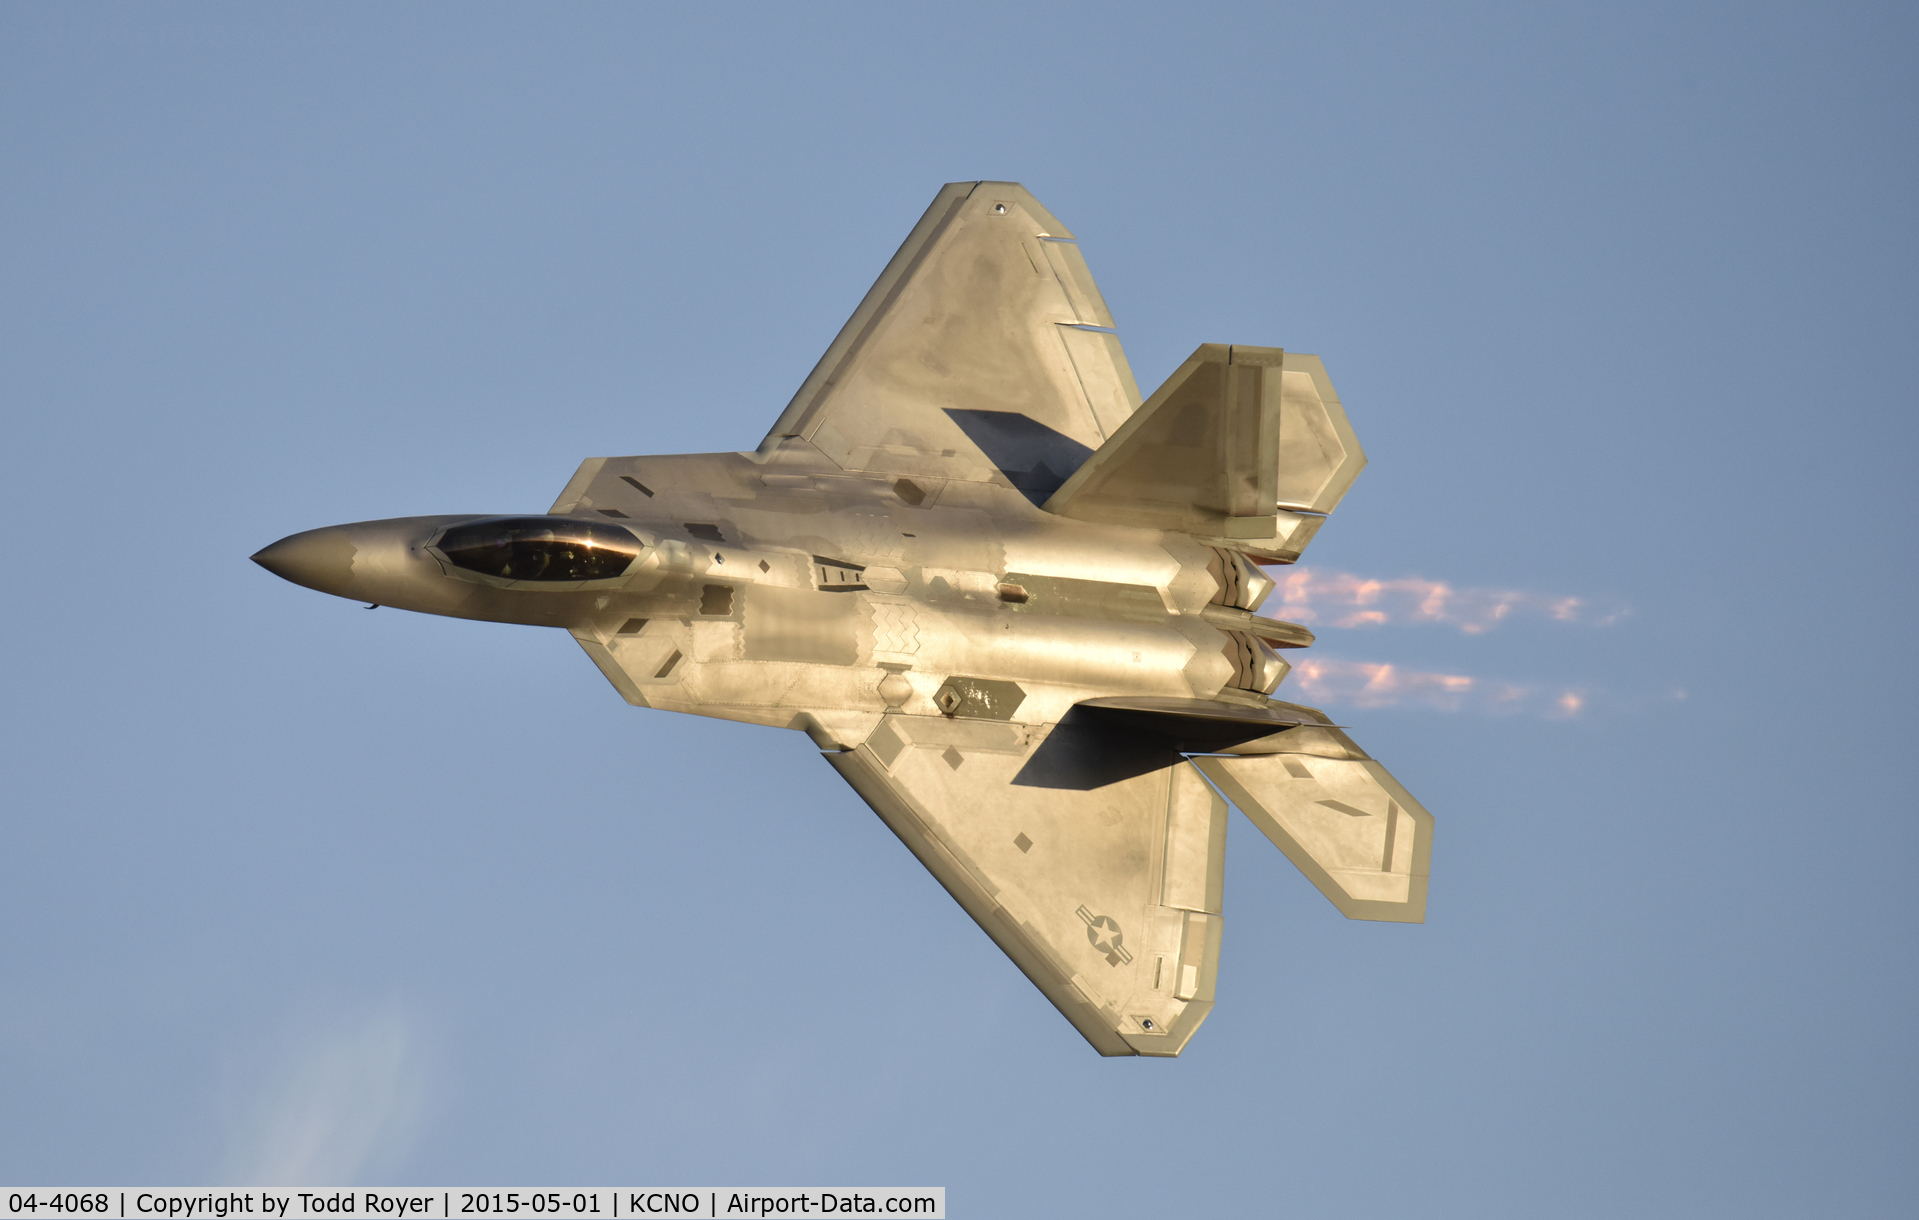 04-4068, 2004 Lockheed Martin F-22A Raptor C/N 4068, Flying at the 2015 Planes of Fame Airshow